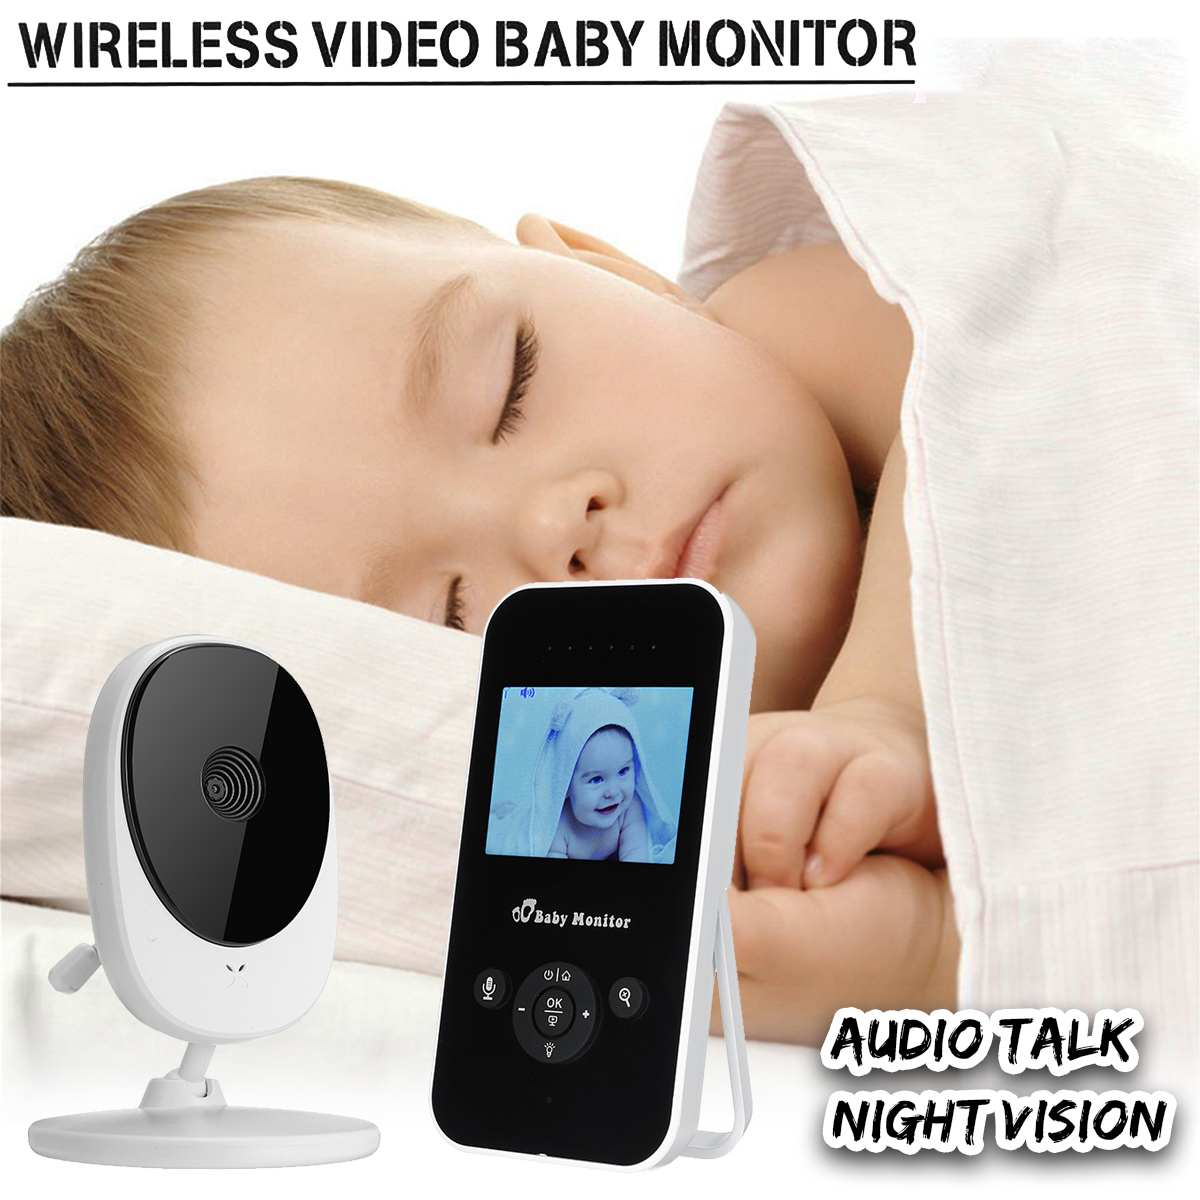 2.4G Wireless 2.4inch LCD Baby Monitor with Camera High Resolution Video Color Night Vision 2 Way Talk Monitoring Home Security wireless lcd audio video baby monitor security camera baby monitor with camera 2 way talk night vision ir temperature monitoring